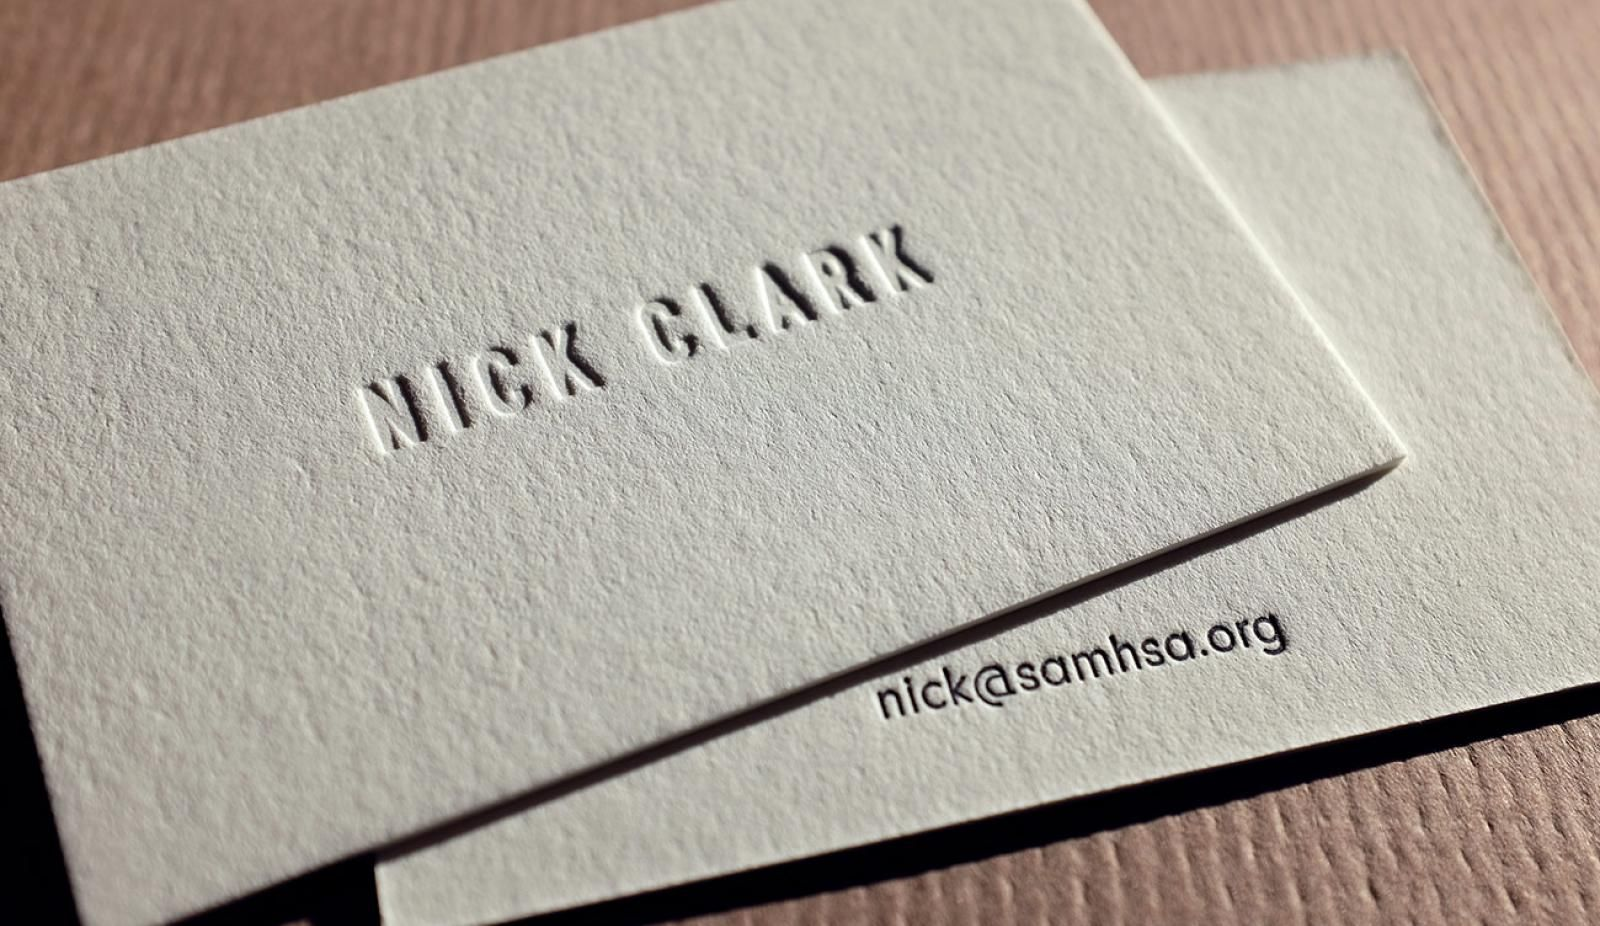 Calling Cards Hoban Cards The Requisite Card Letterpress